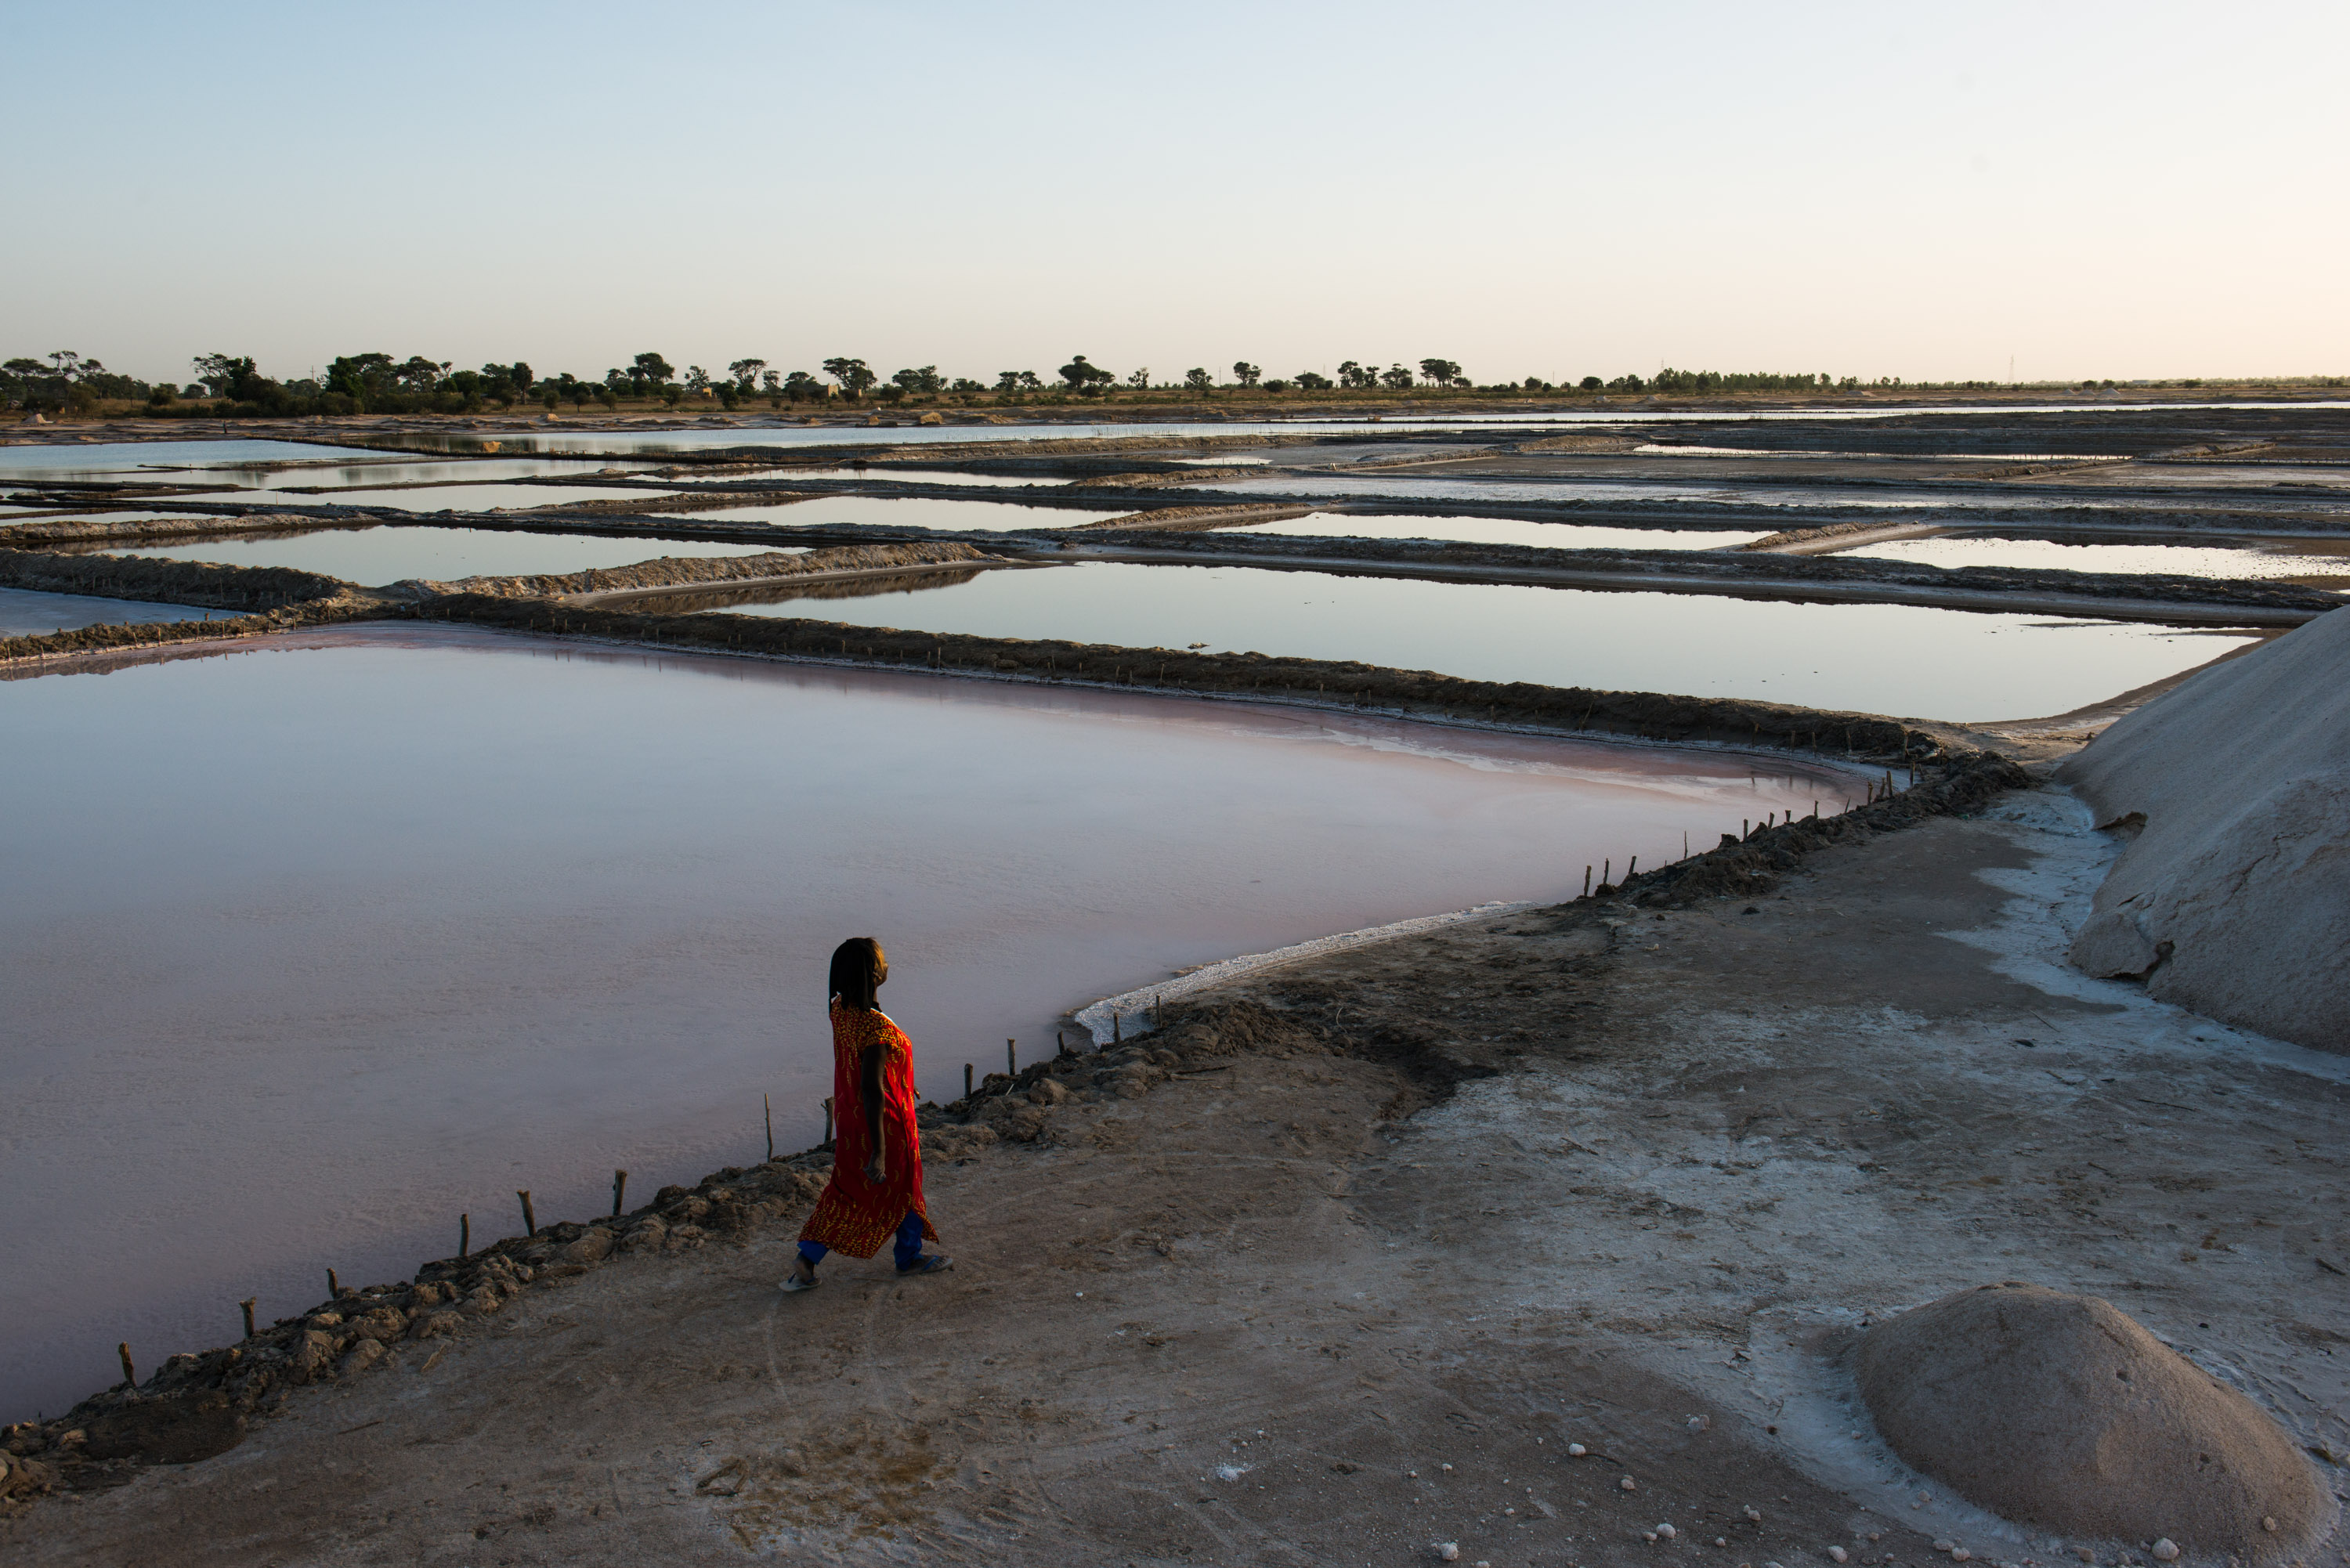 Diouf walks along the edge of irrigation pools at her salt flat in Fatick. In the coming months, the water will evaporate, leaving salt behind.